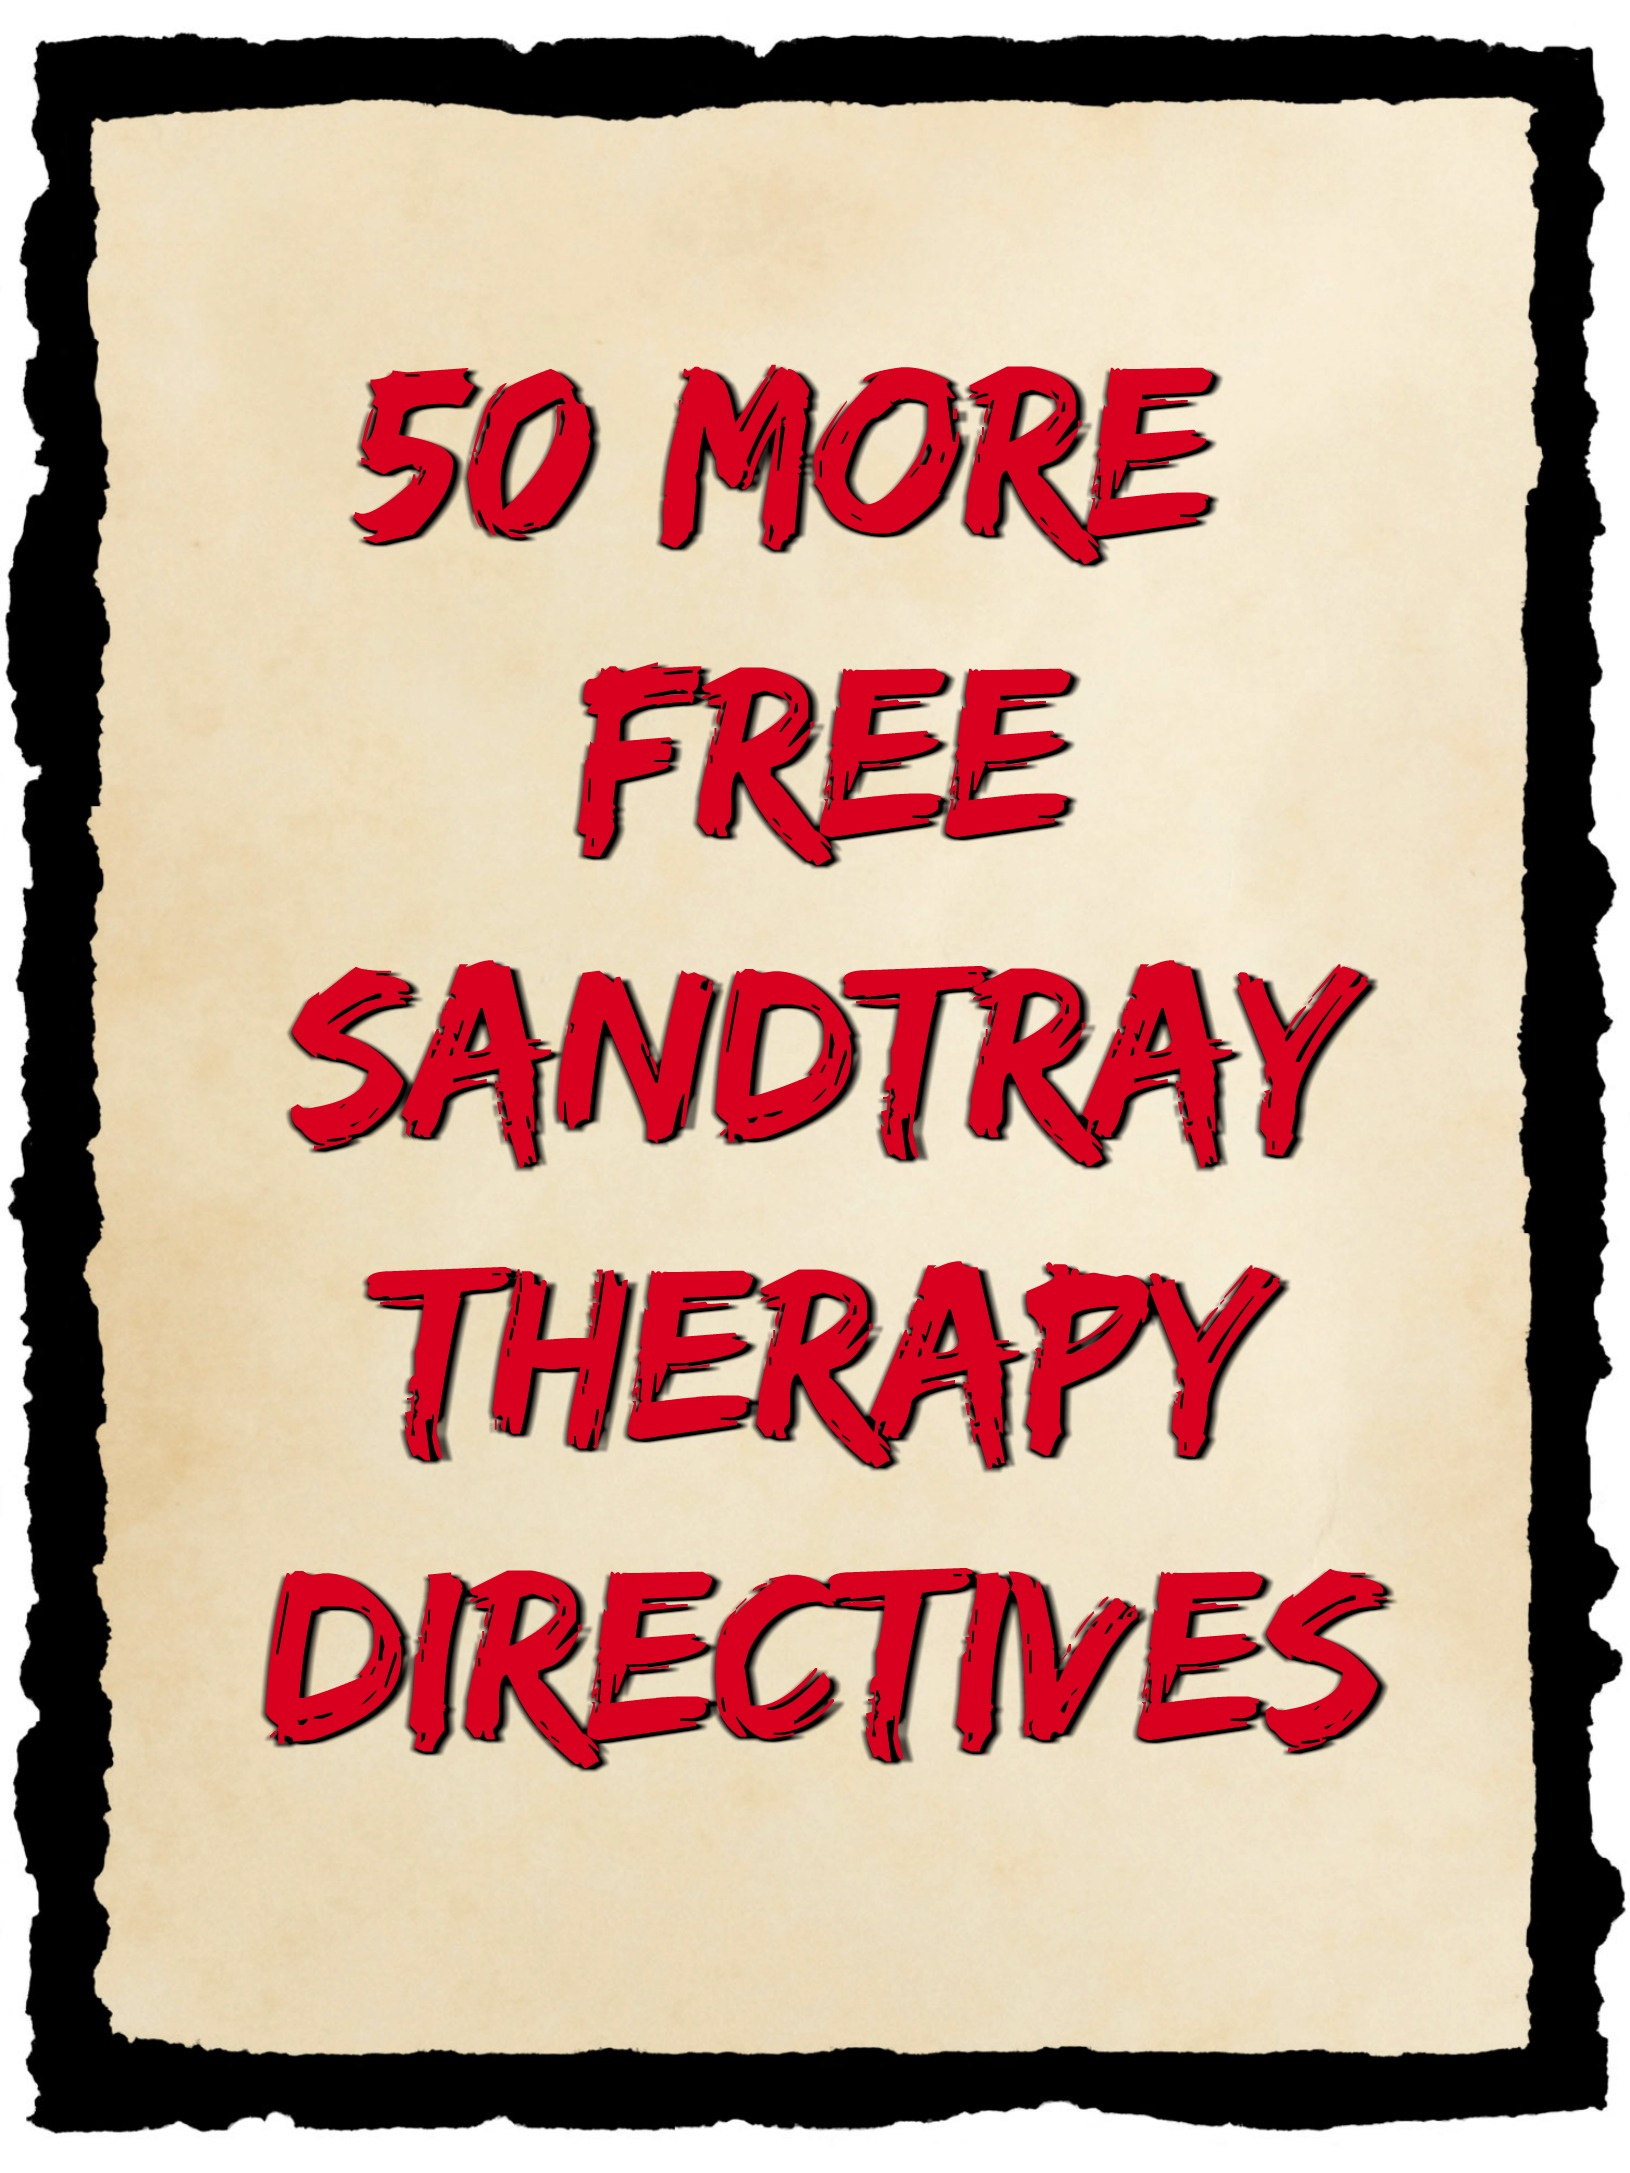 50 More Free Sandtray Therapy Directives